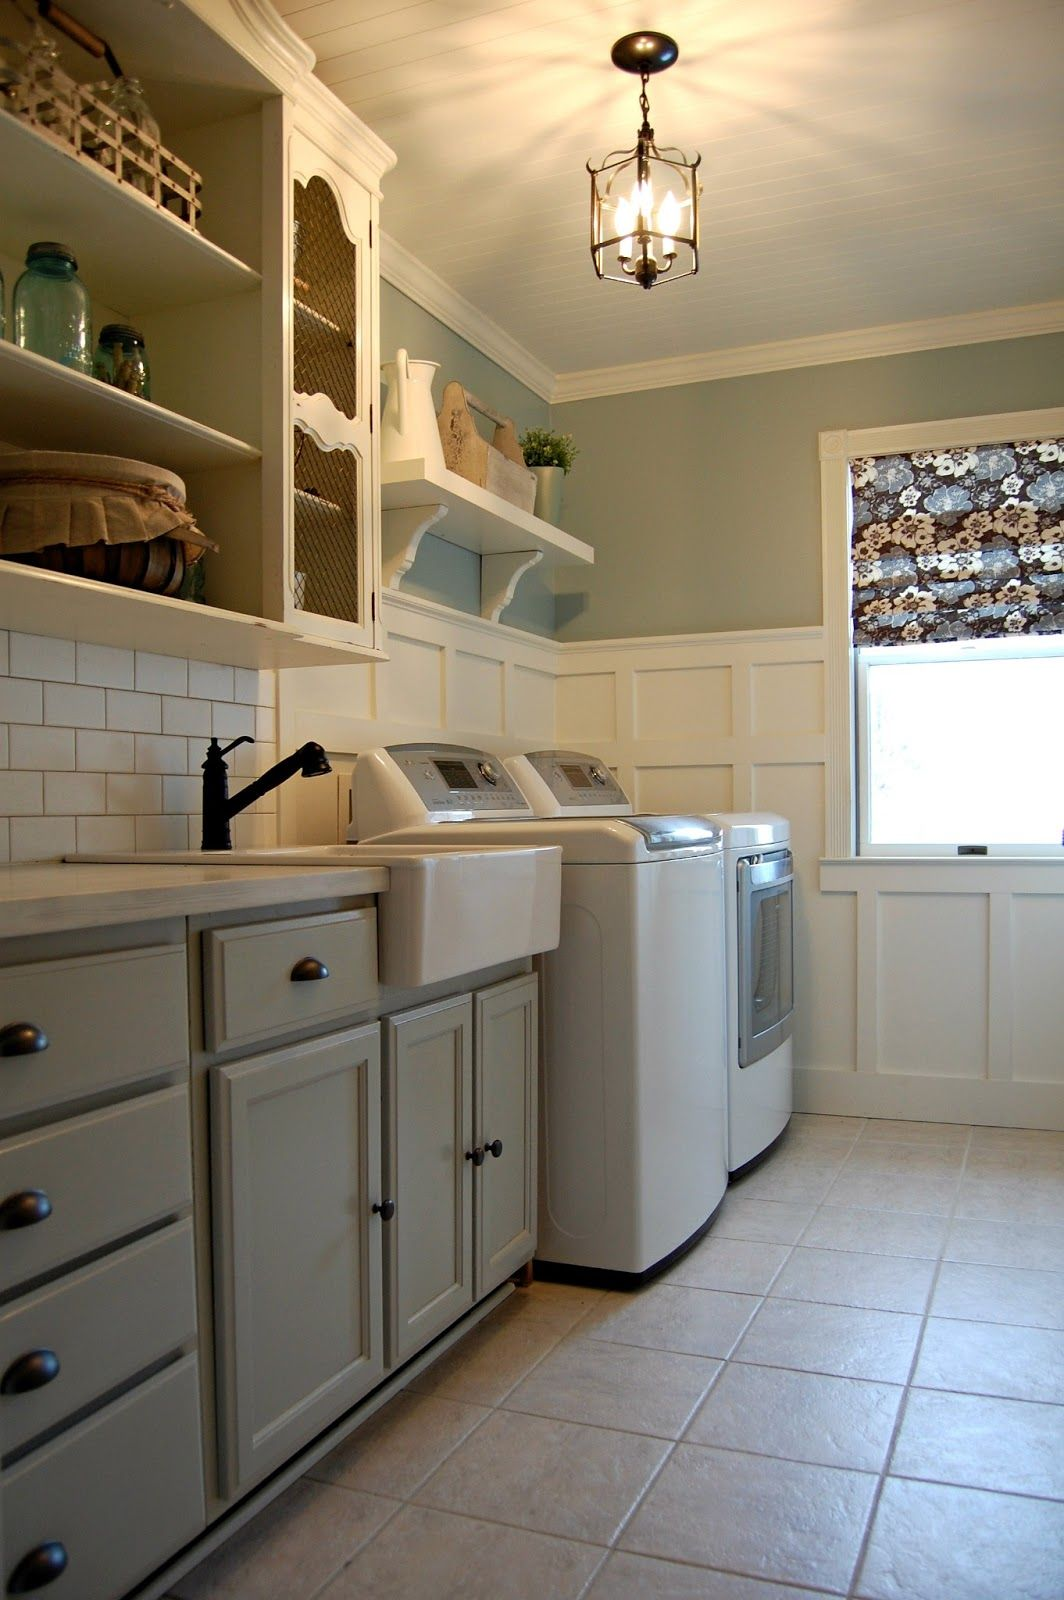 lighting for laundry room. Pictures Of Laundry Rooms | Roly Poly Farm: Room Reveal Lighting For